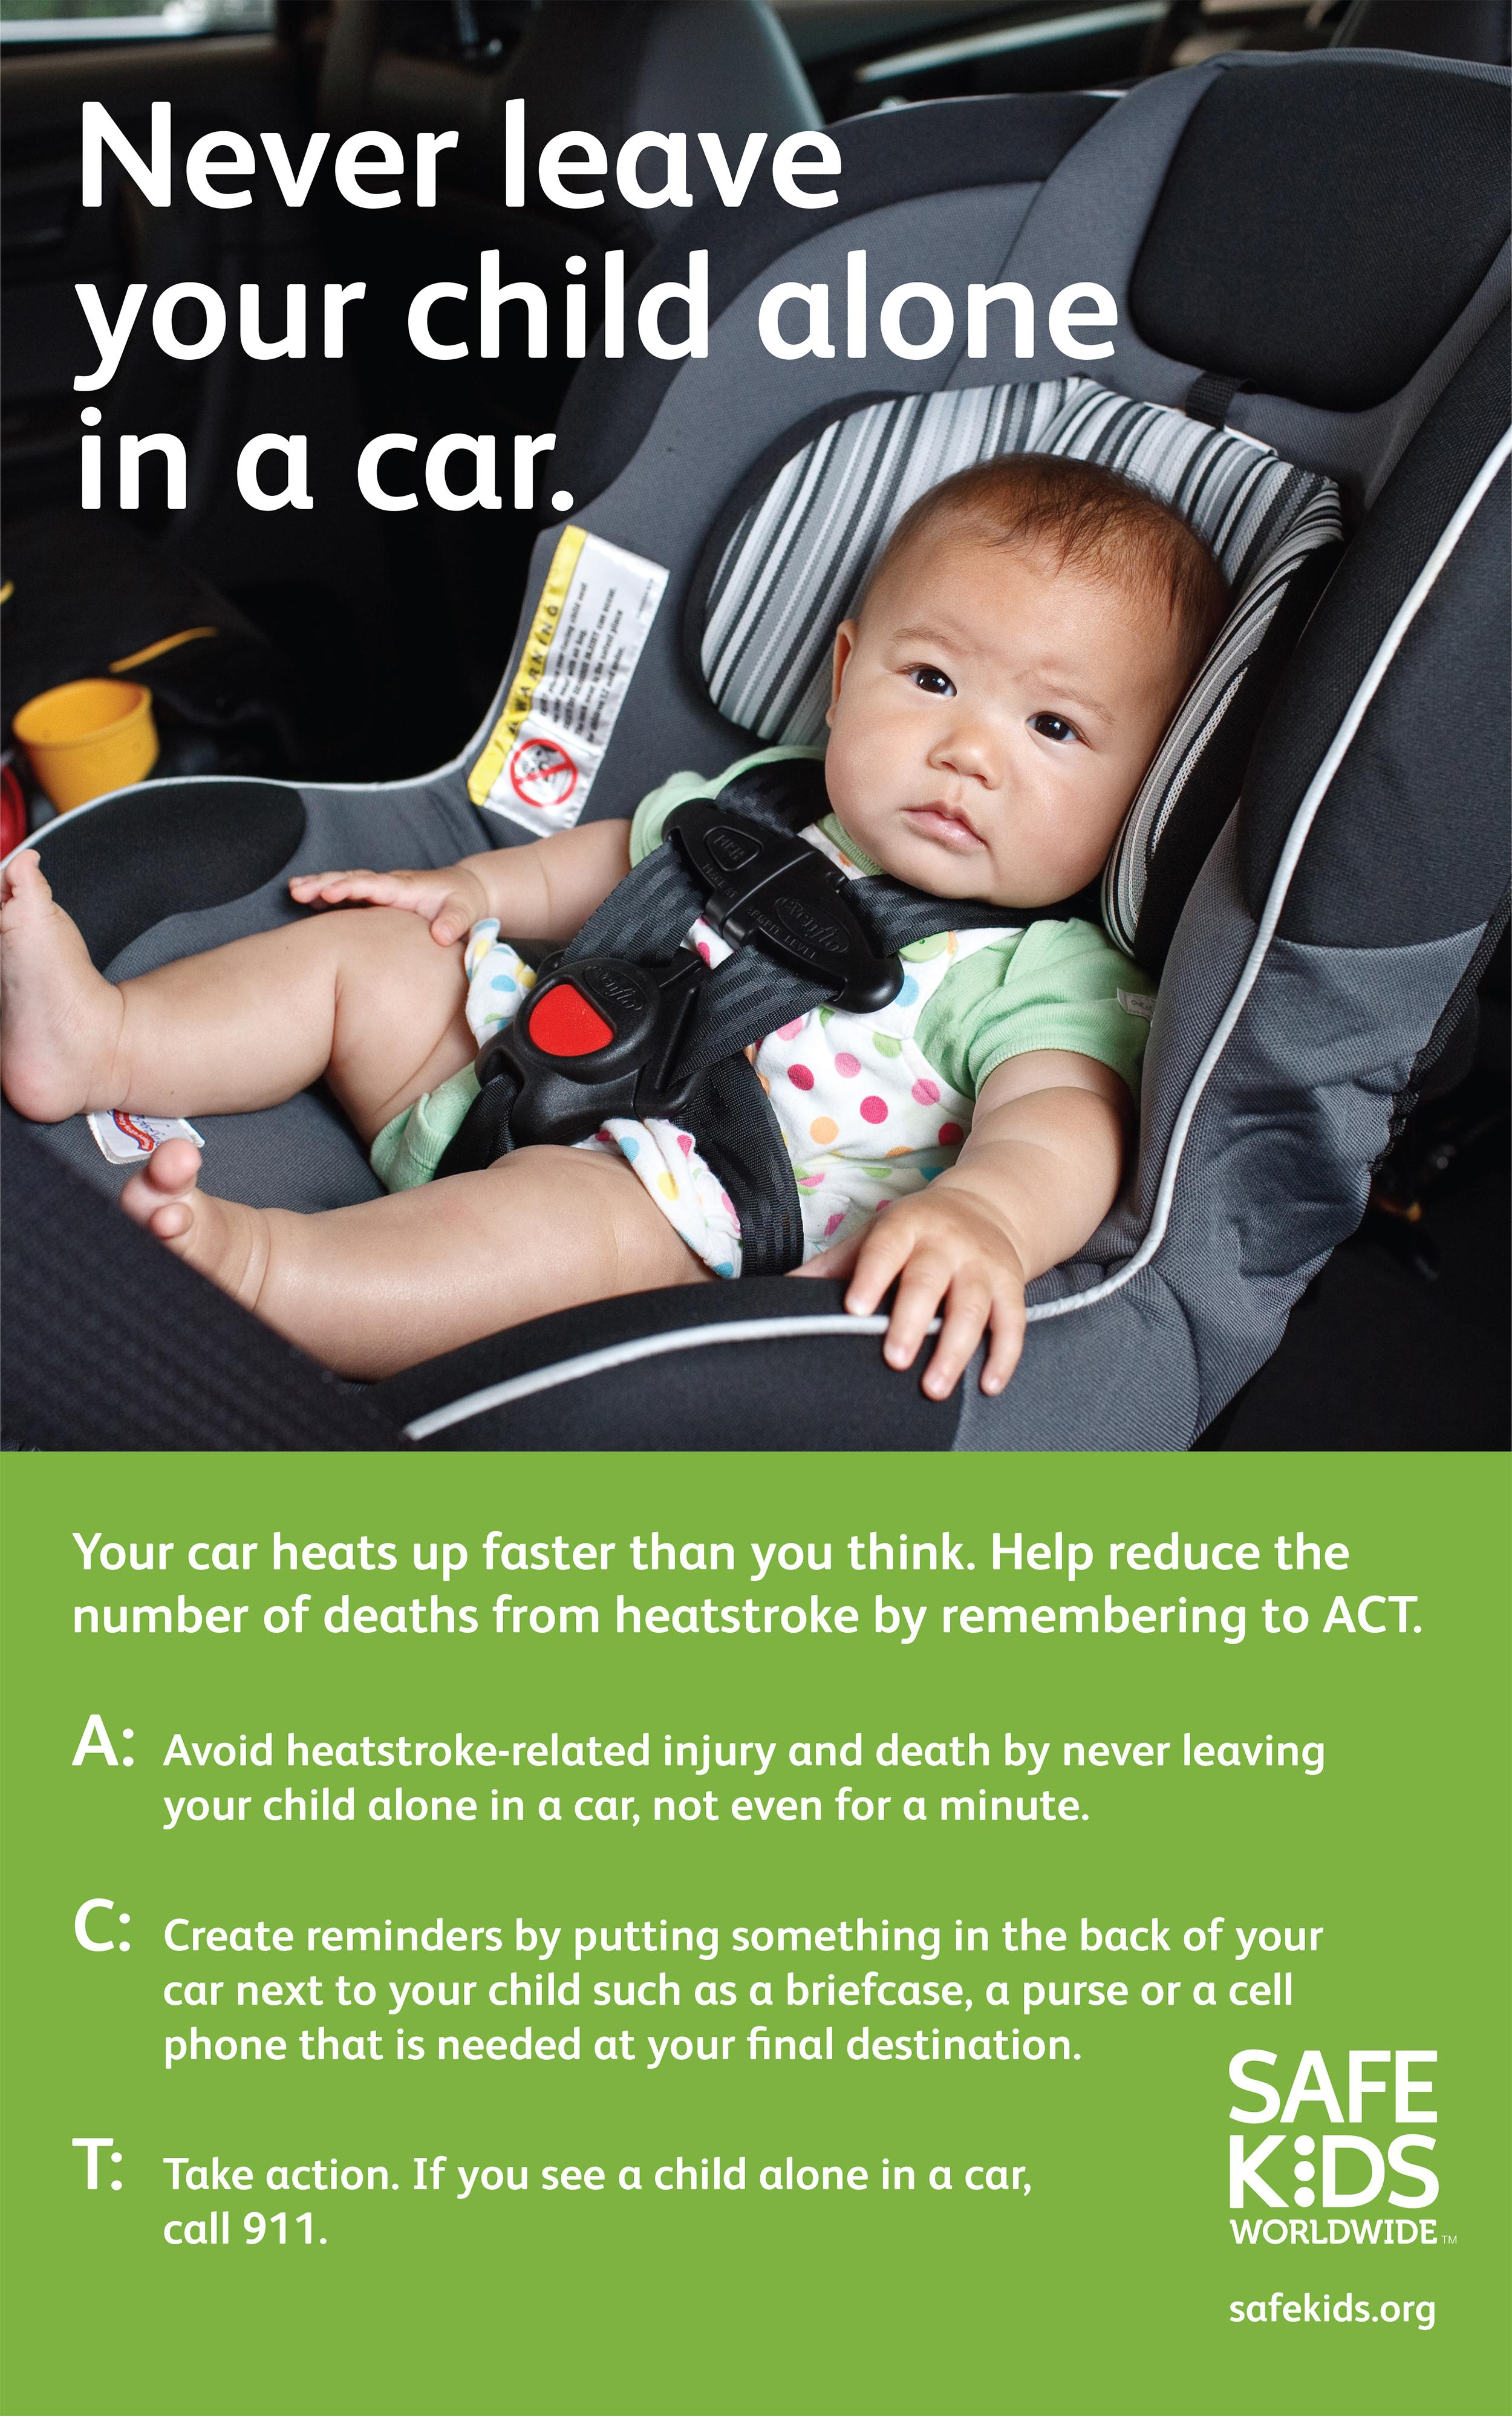 Image: A poster from SafeKids.org advises people to not leave kids alone in cars.